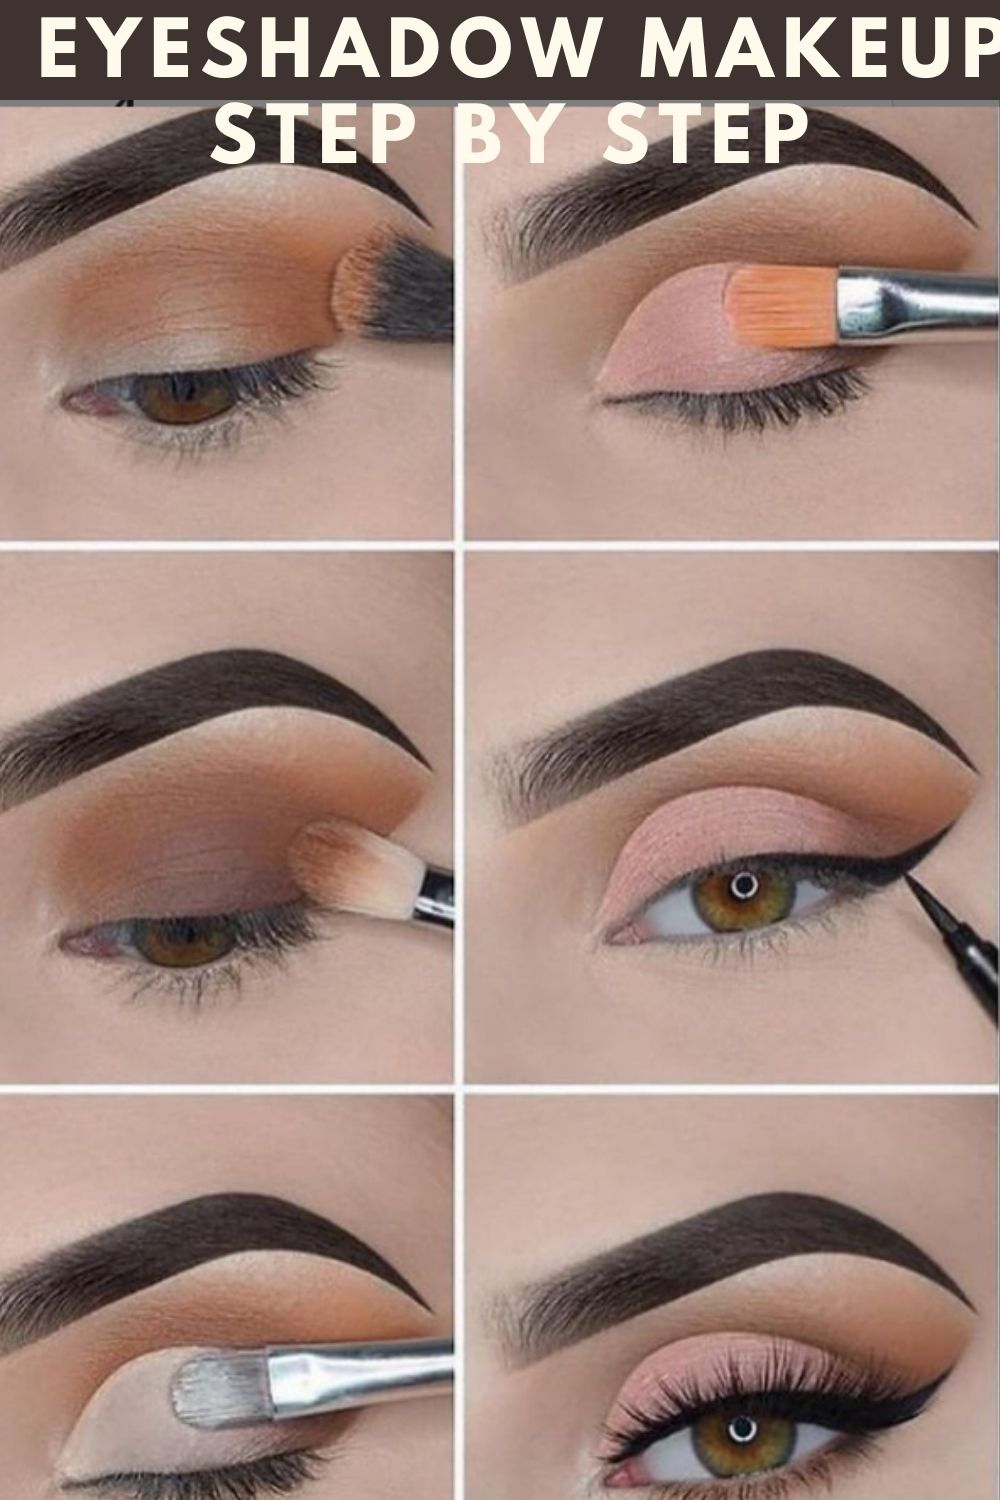 Stunning eyeshadow makeup tutorial for beginners step by step!